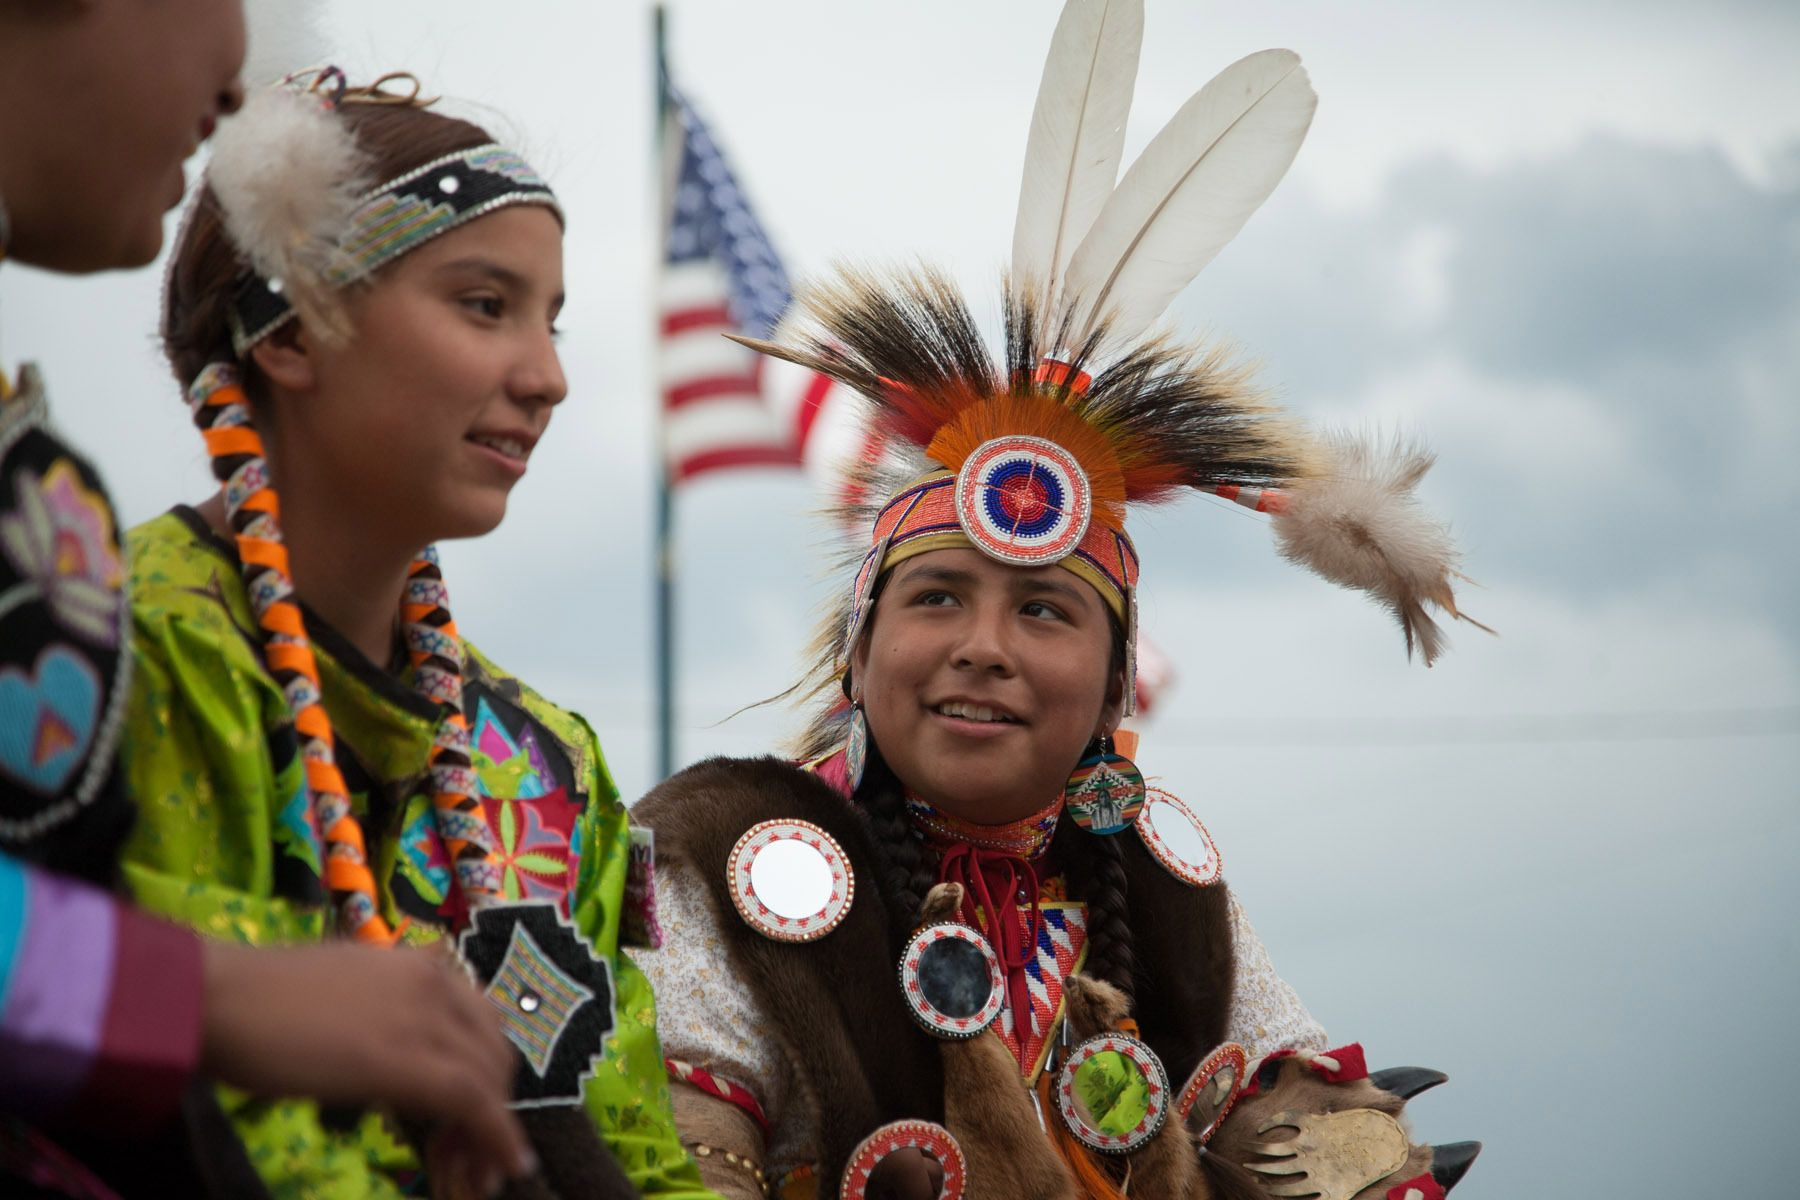 Vitality of Native youth